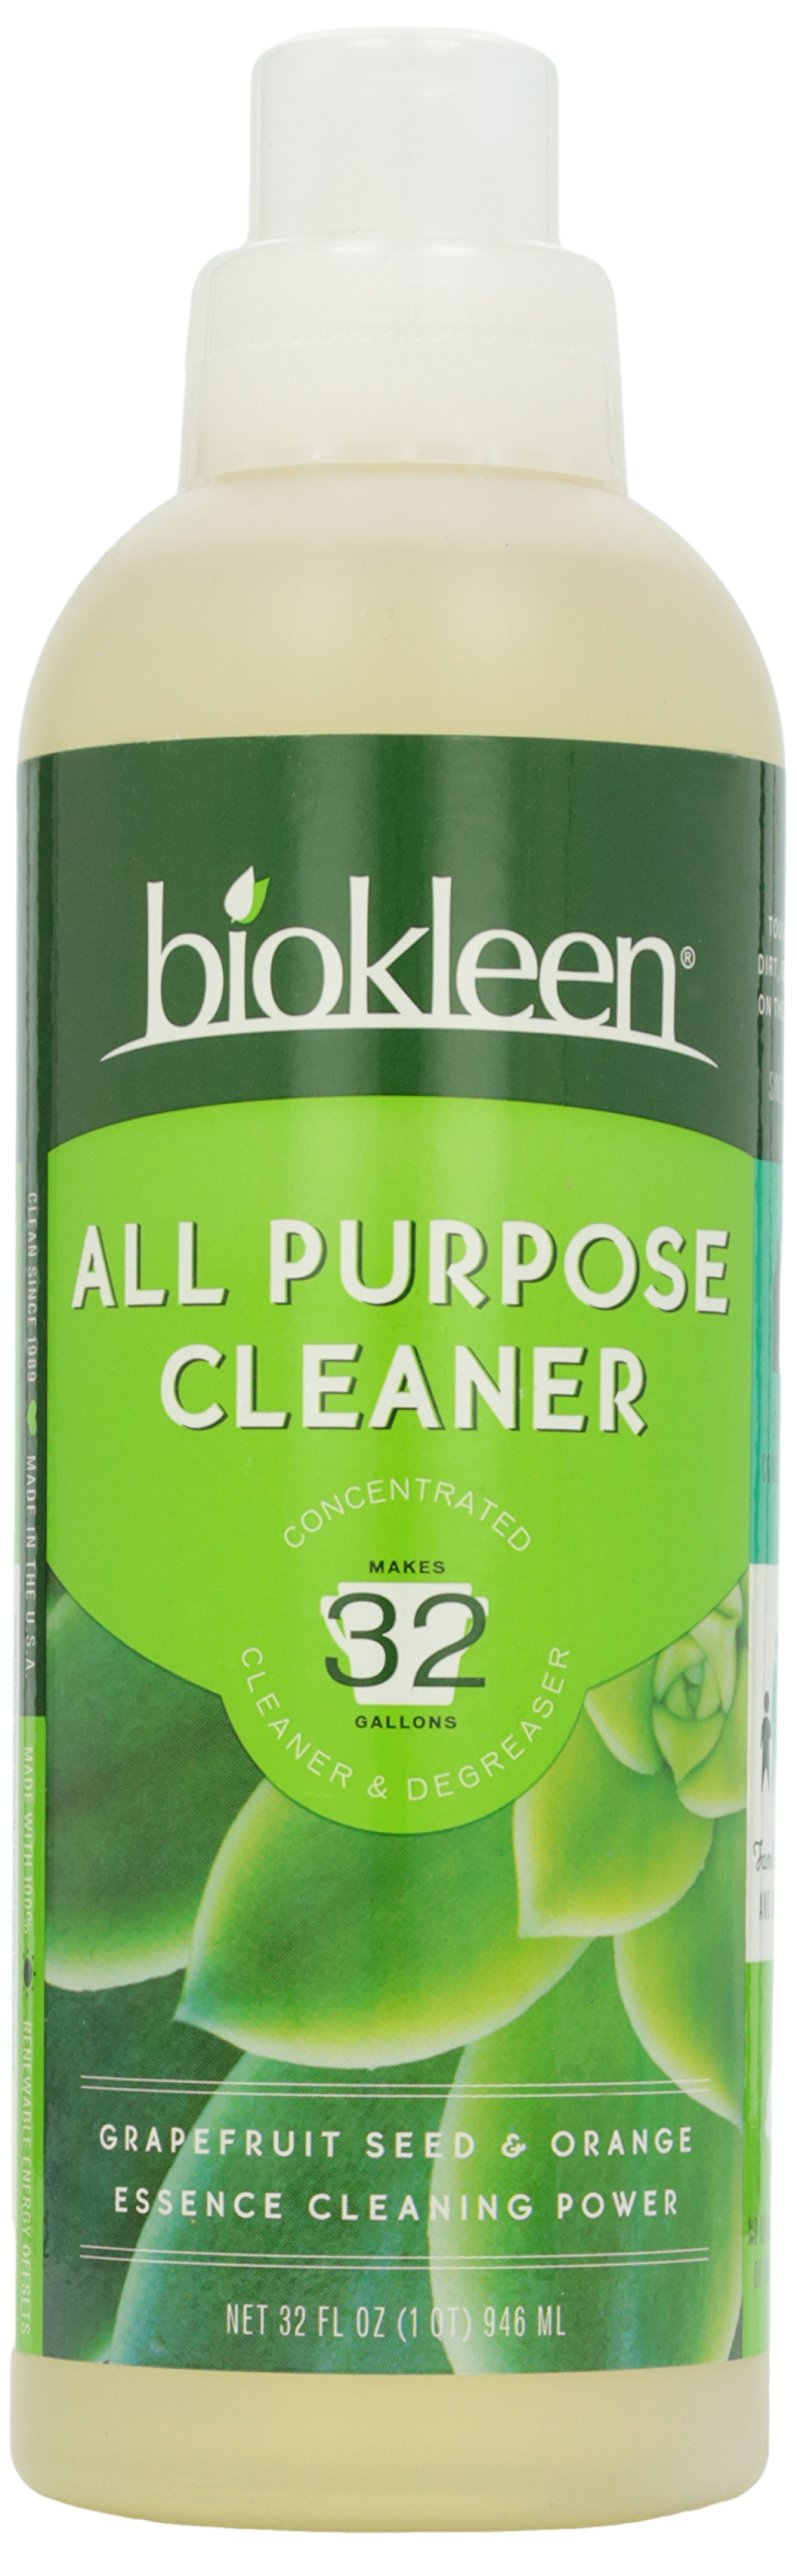 Biokleen Bac Out Bathroom Cleaner Lavender Lime Extracts 32 Ounce Health